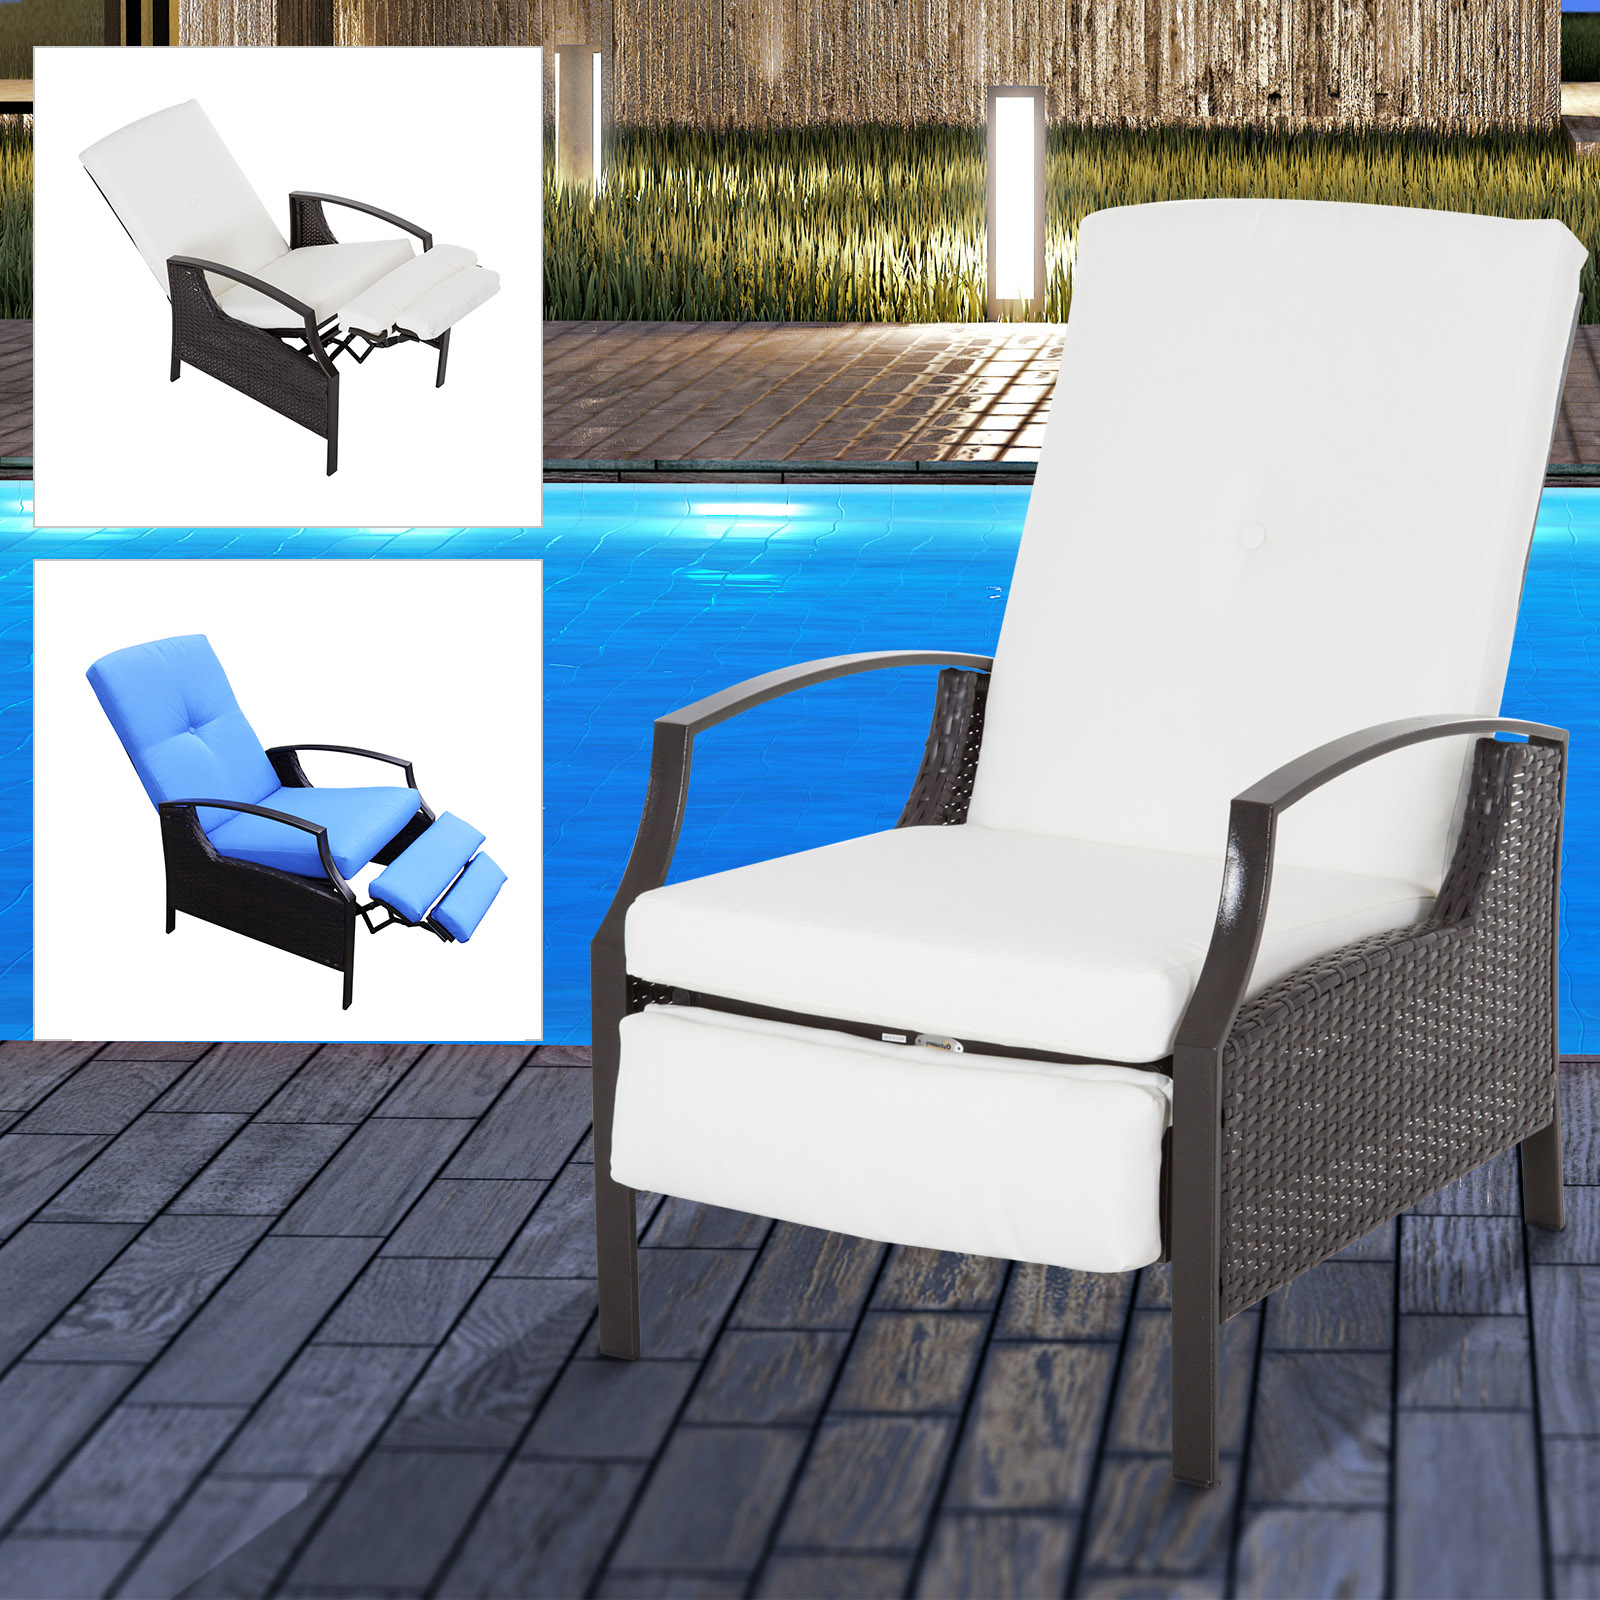 Well Liked Outdoor Adjustable Rattan Wicker Recliner Chairs With Cushion Within Details About Adjustable Wicker Recliner Cushion Chair Pool Chaise Patio  Lounge Outdoor (View 22 of 25)